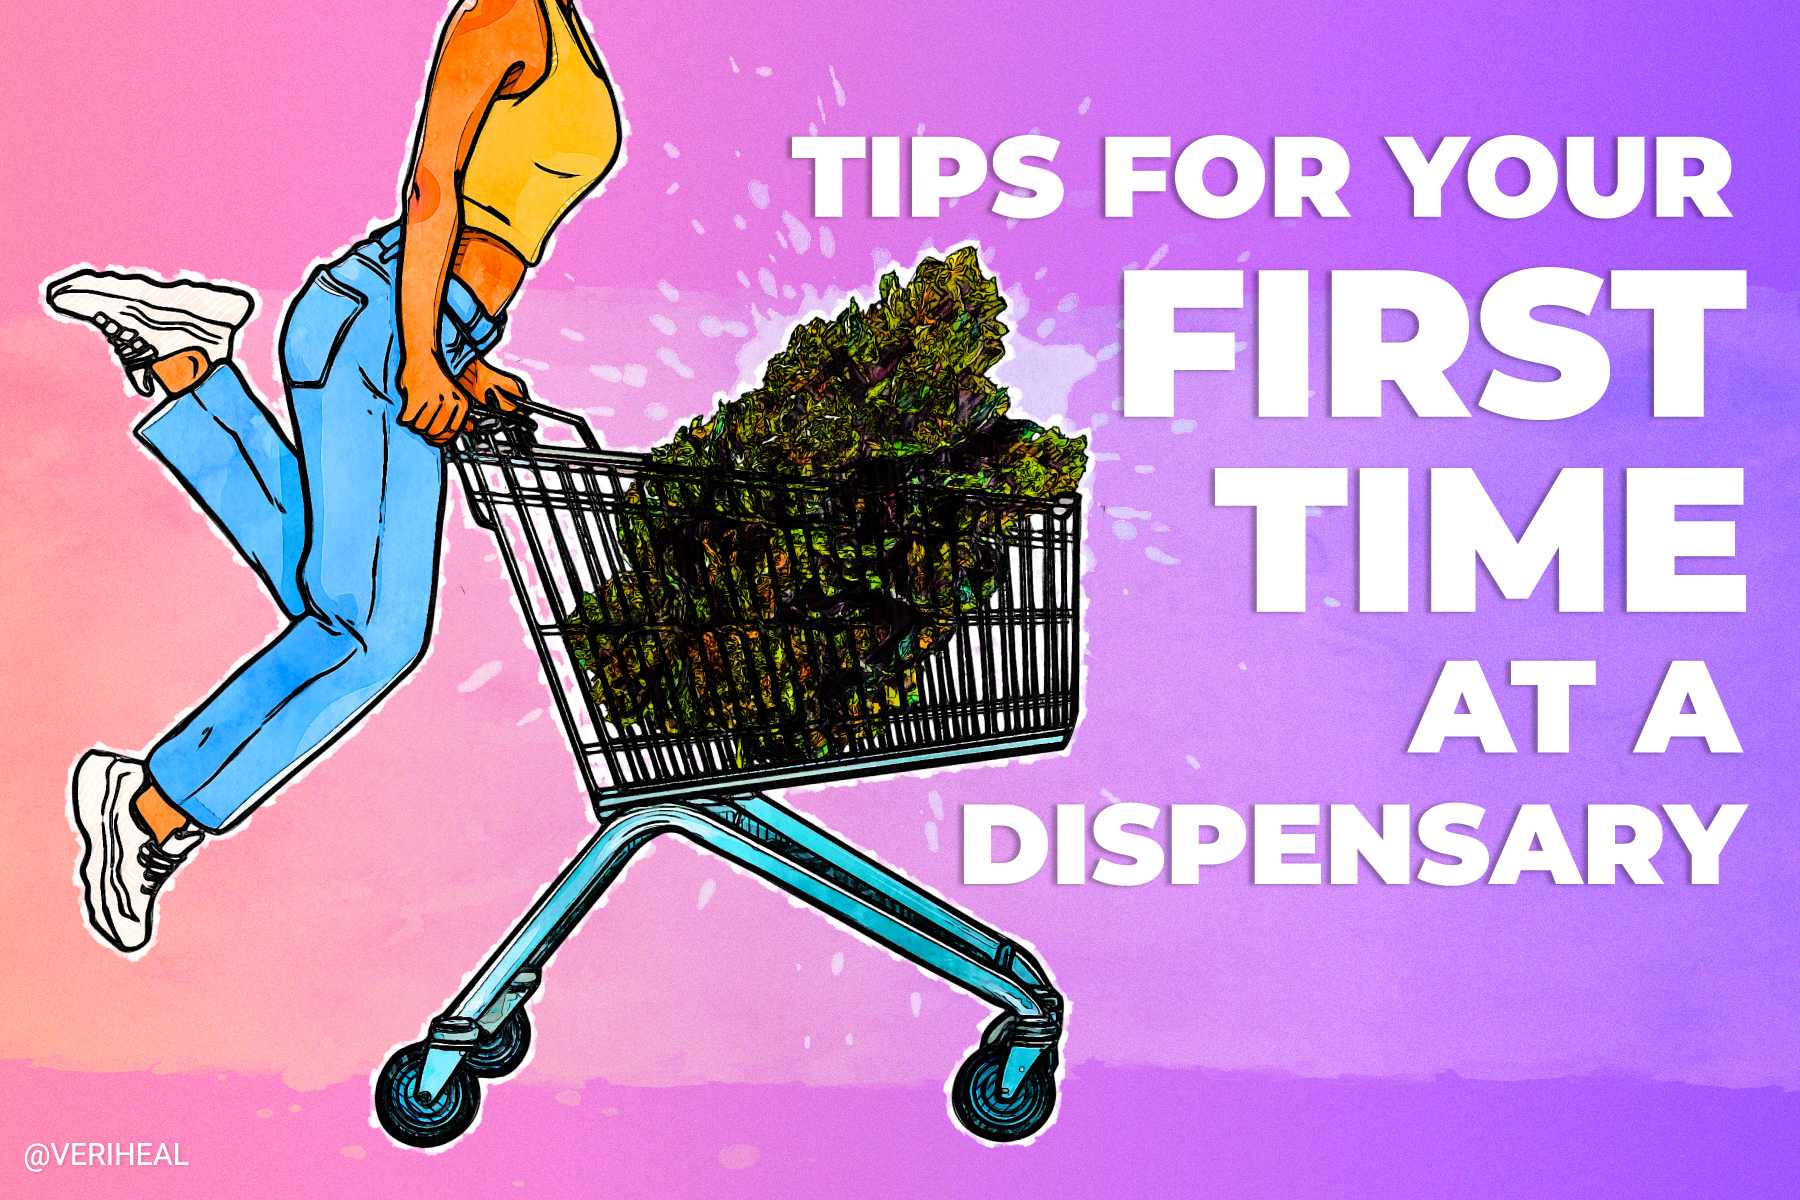 Shopping at a Dispensary for the First Time? Here Are 3 Tips